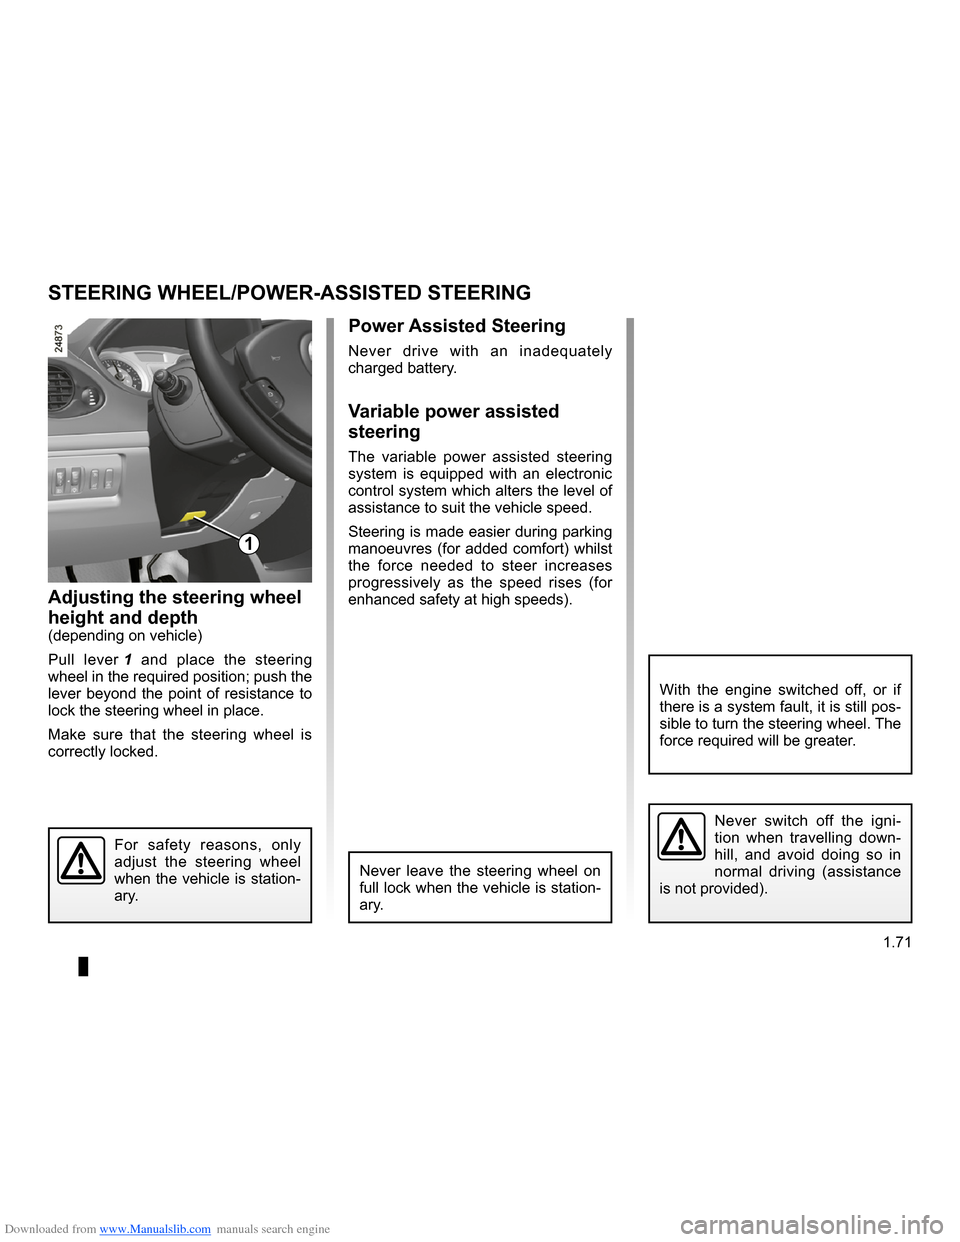 RENAULT CLIO 2009 X85 / 3.G Owners Manual, Page 77